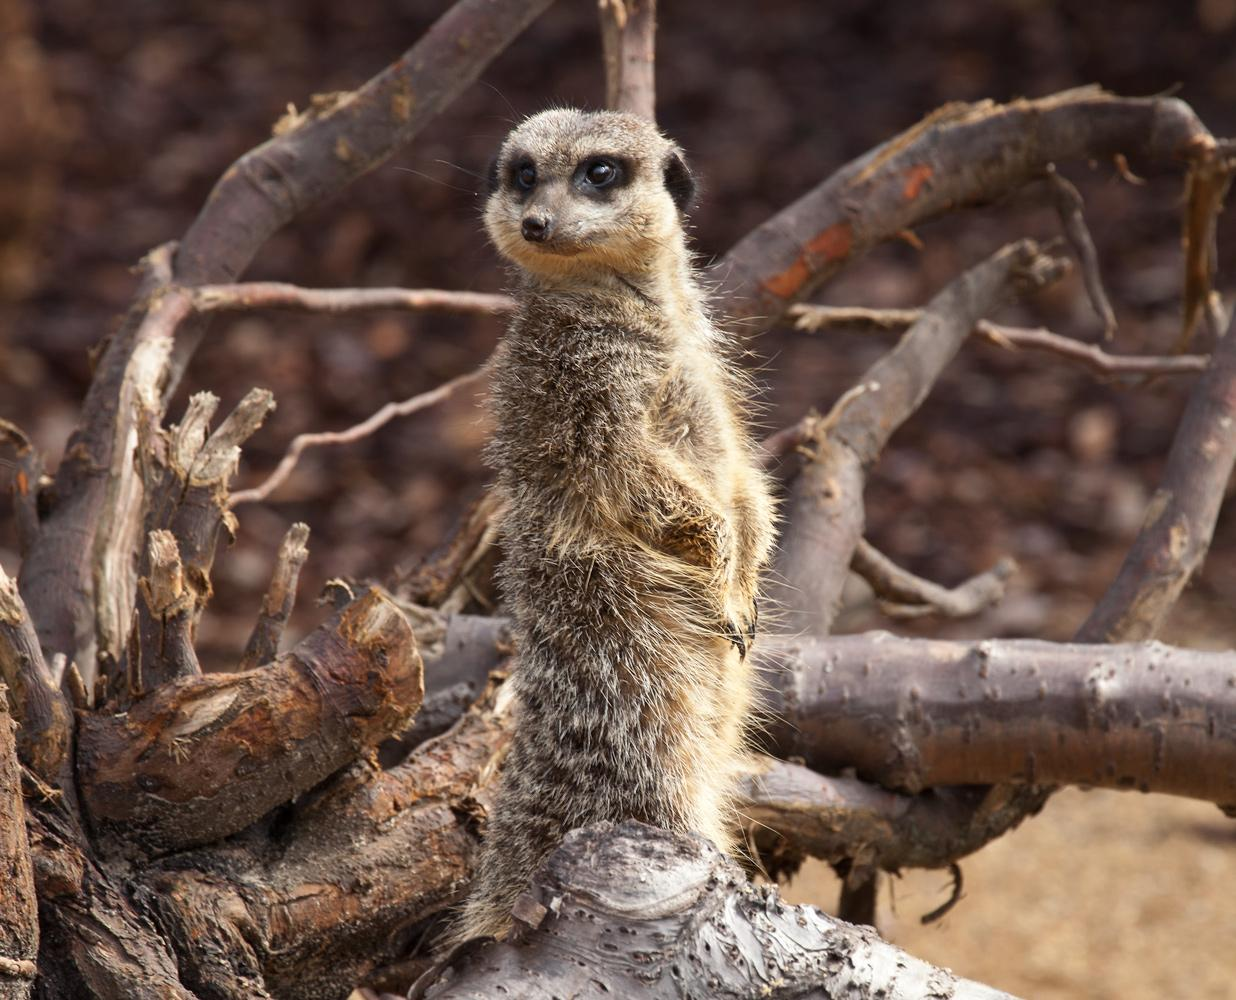 Meerkat / Here's looking at you.